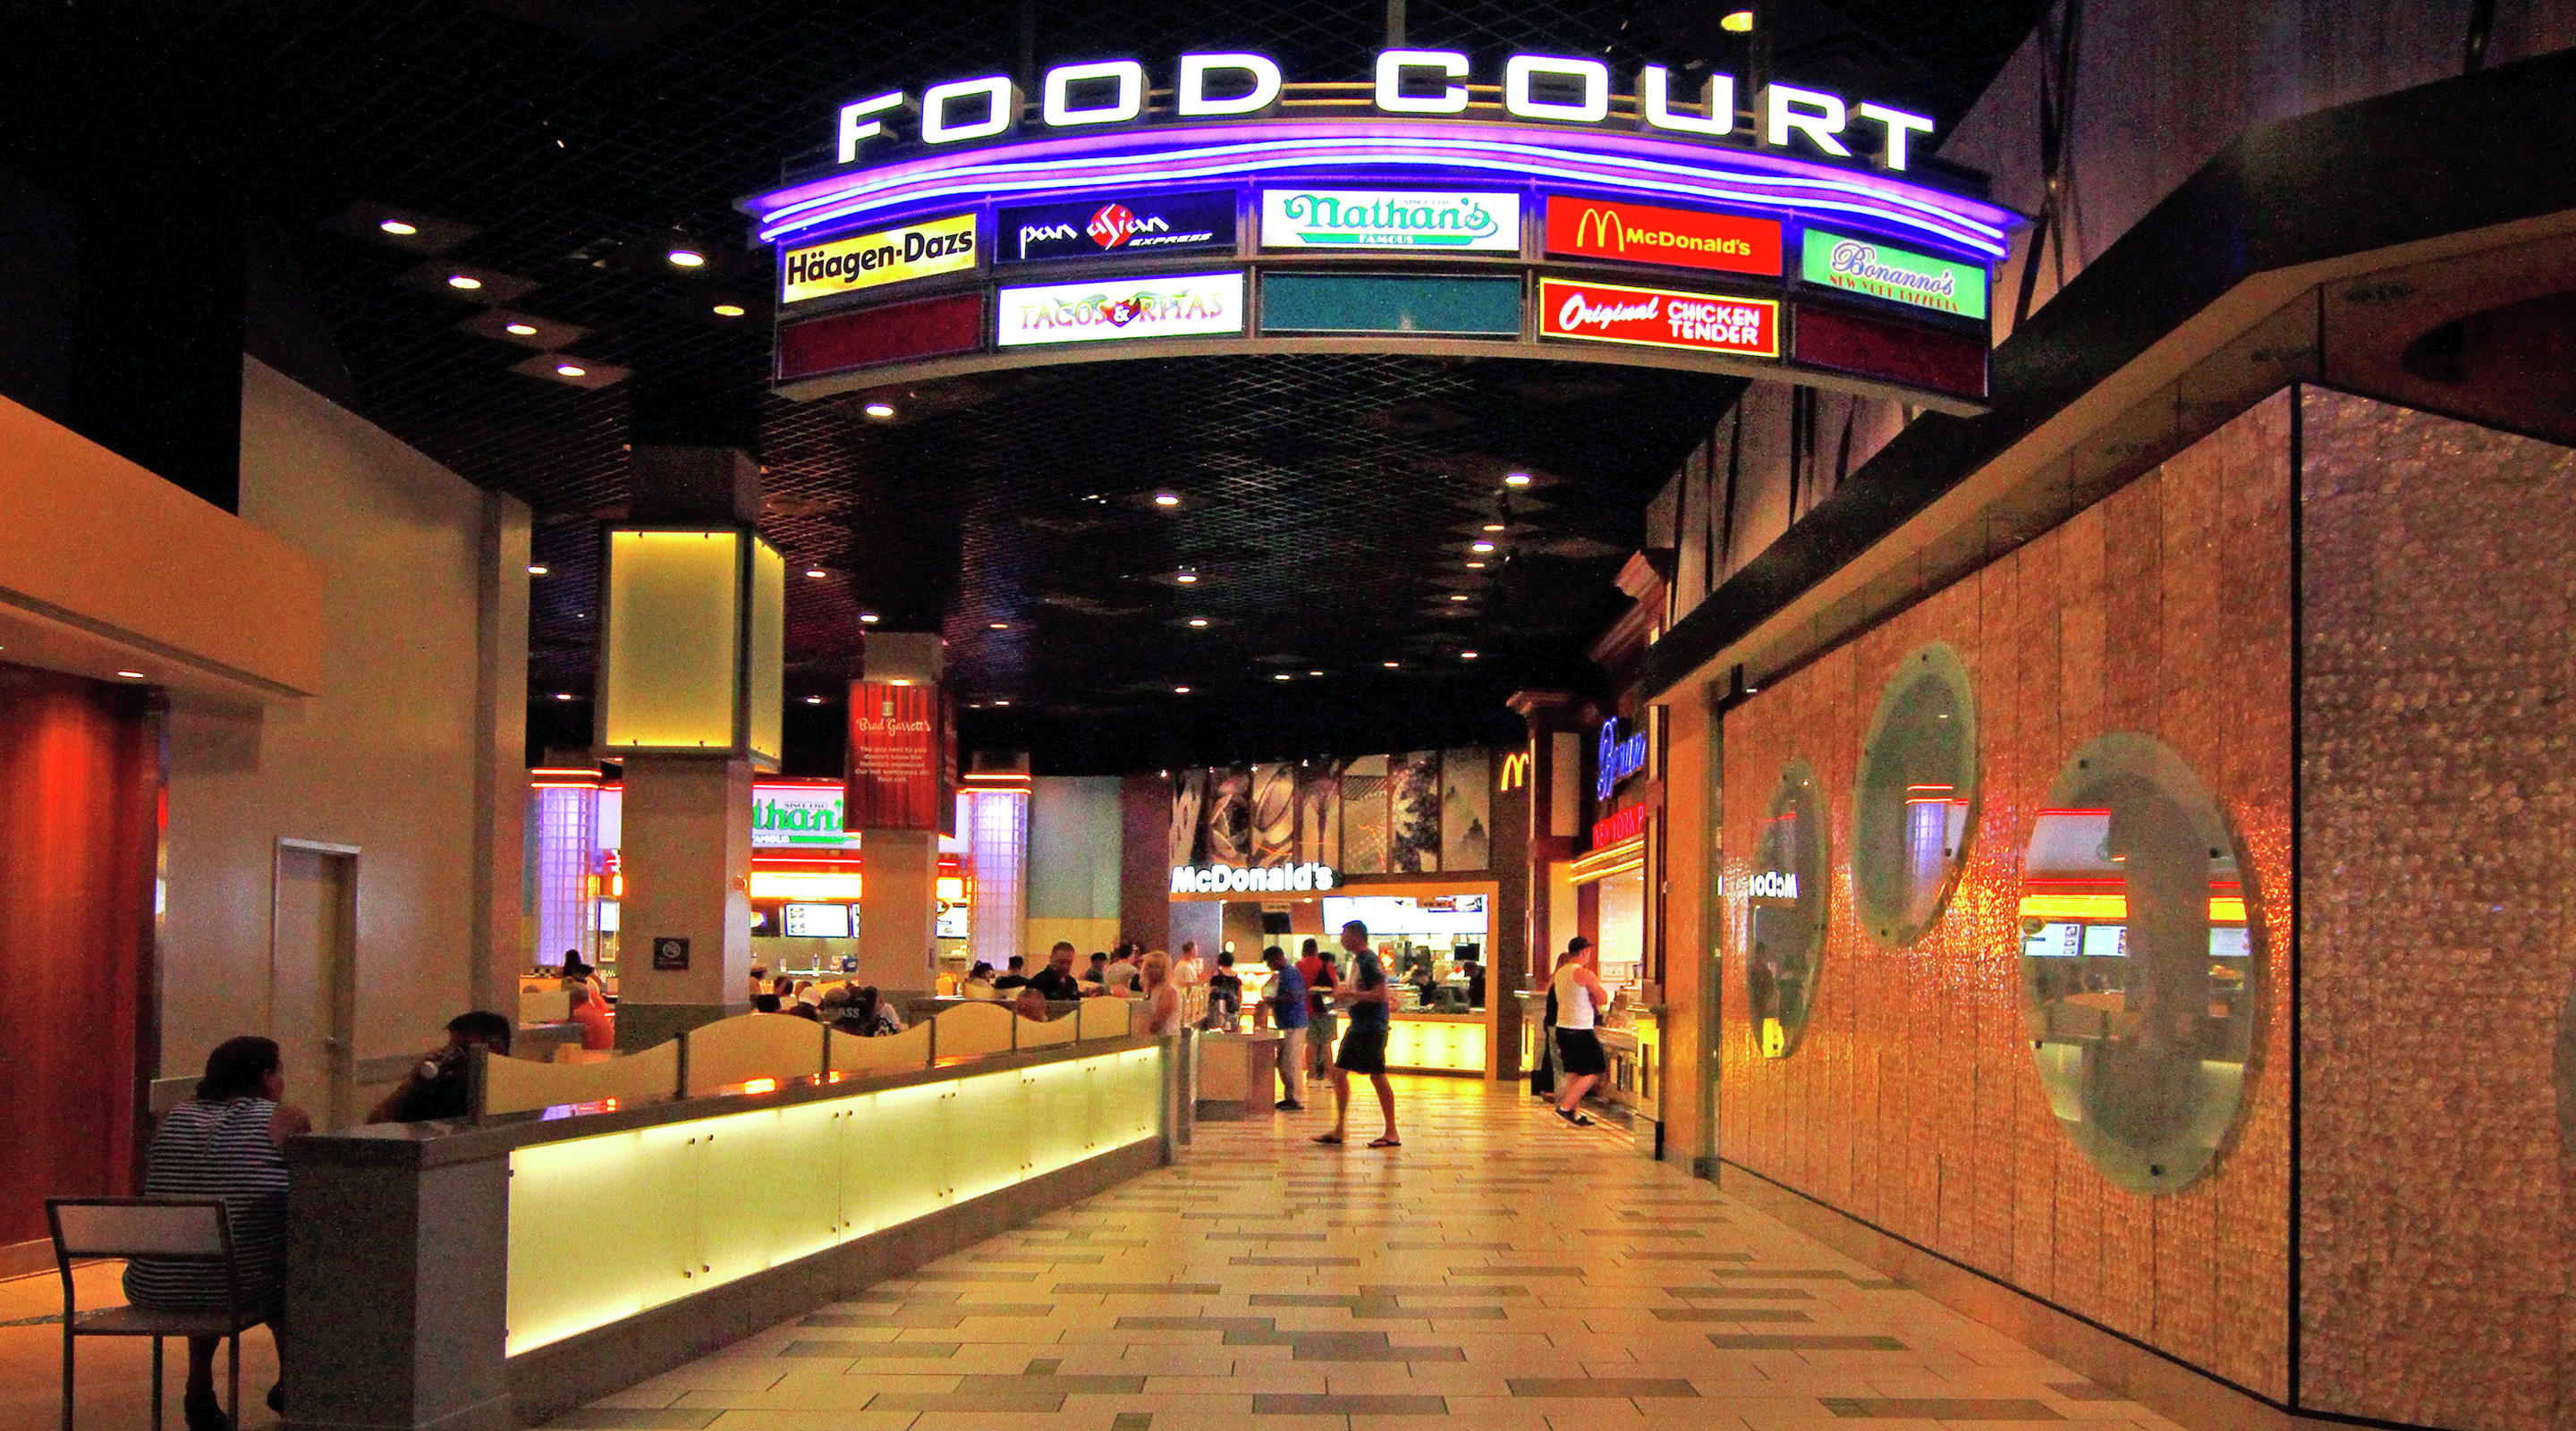 MGM Grand Food Court Entrance